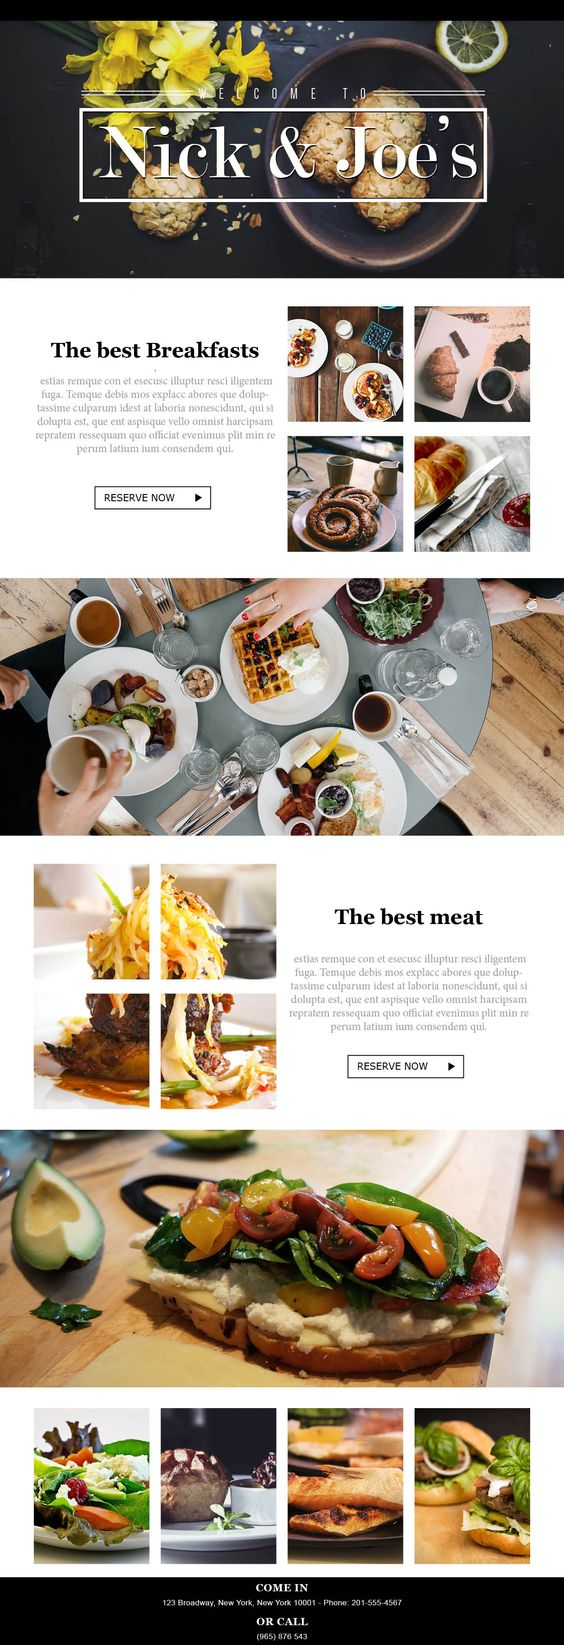 Website Design &#038; Branding<br> for Restaurants